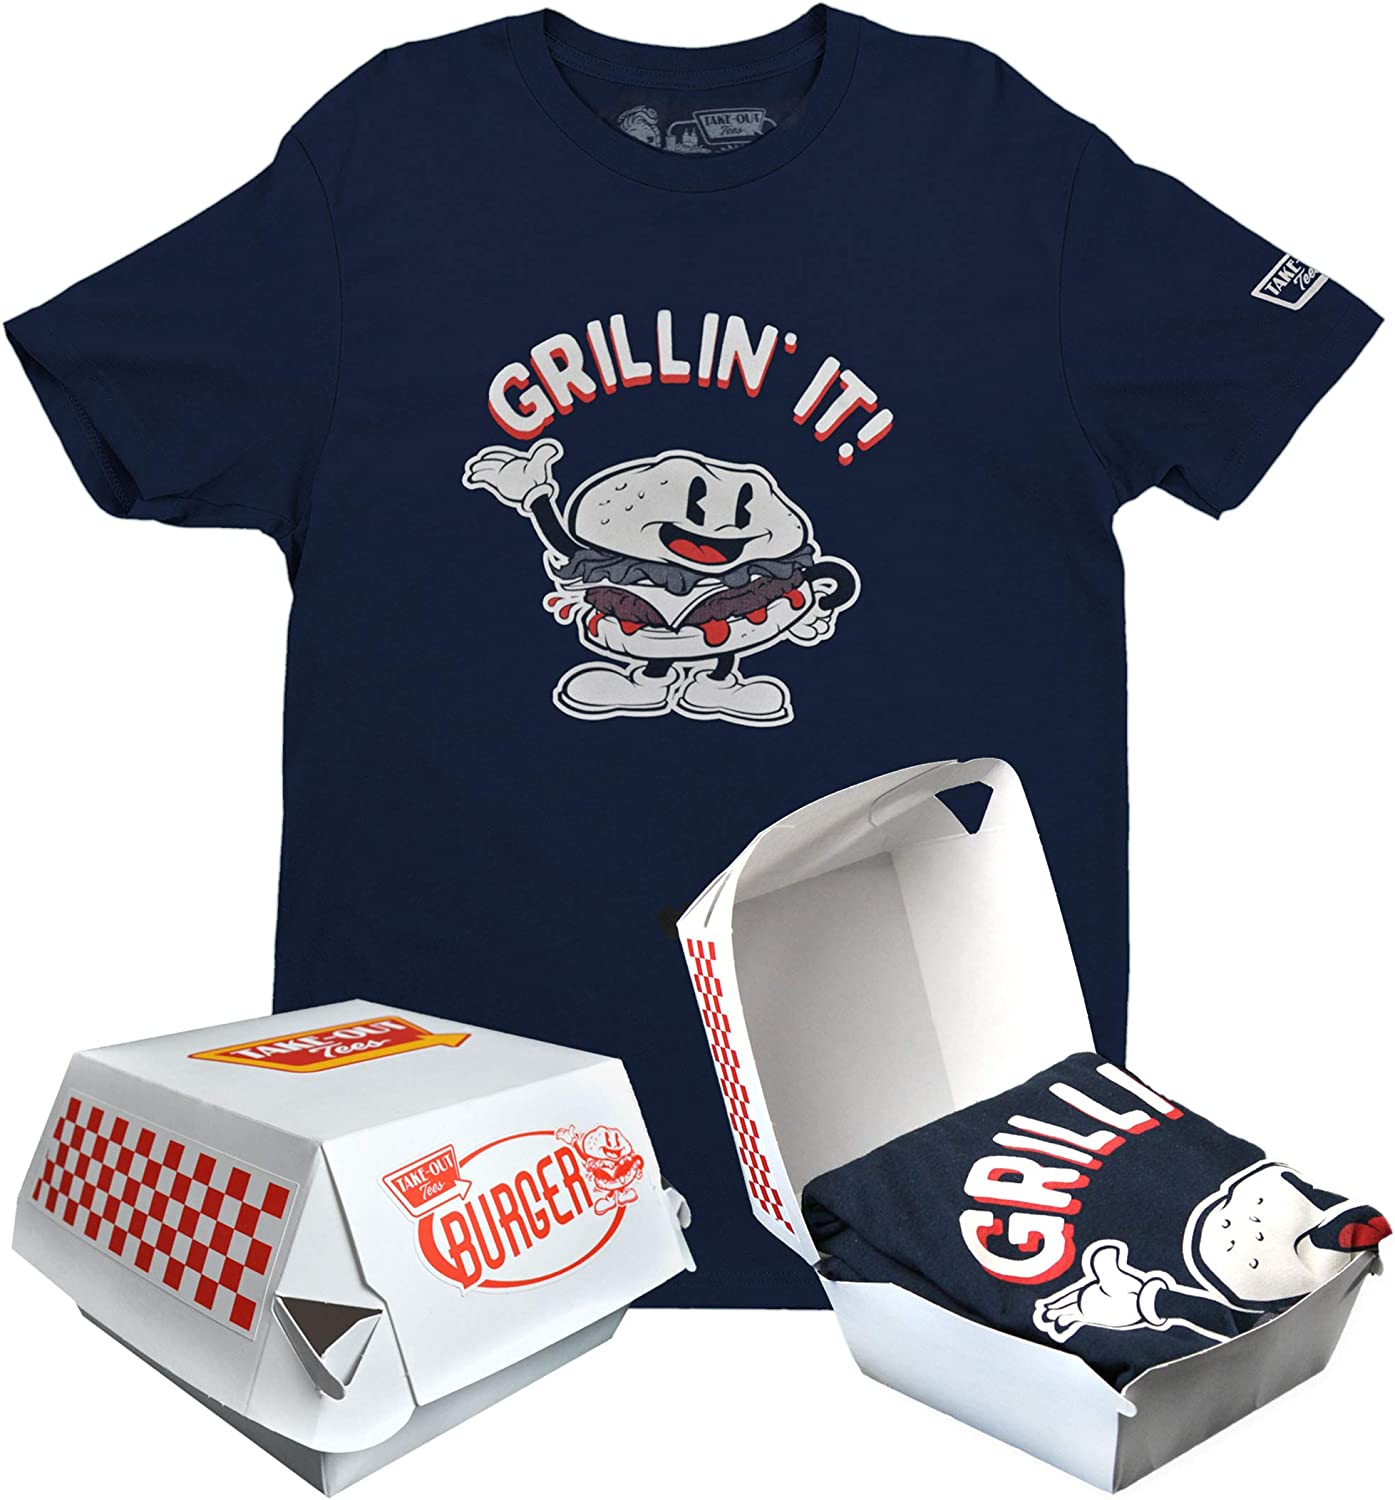 Fun Gifts Novelty T-Shirts for Men, Food Humor T-Shirts in Takeout Boxes, Father's Day Grandpa Gifts